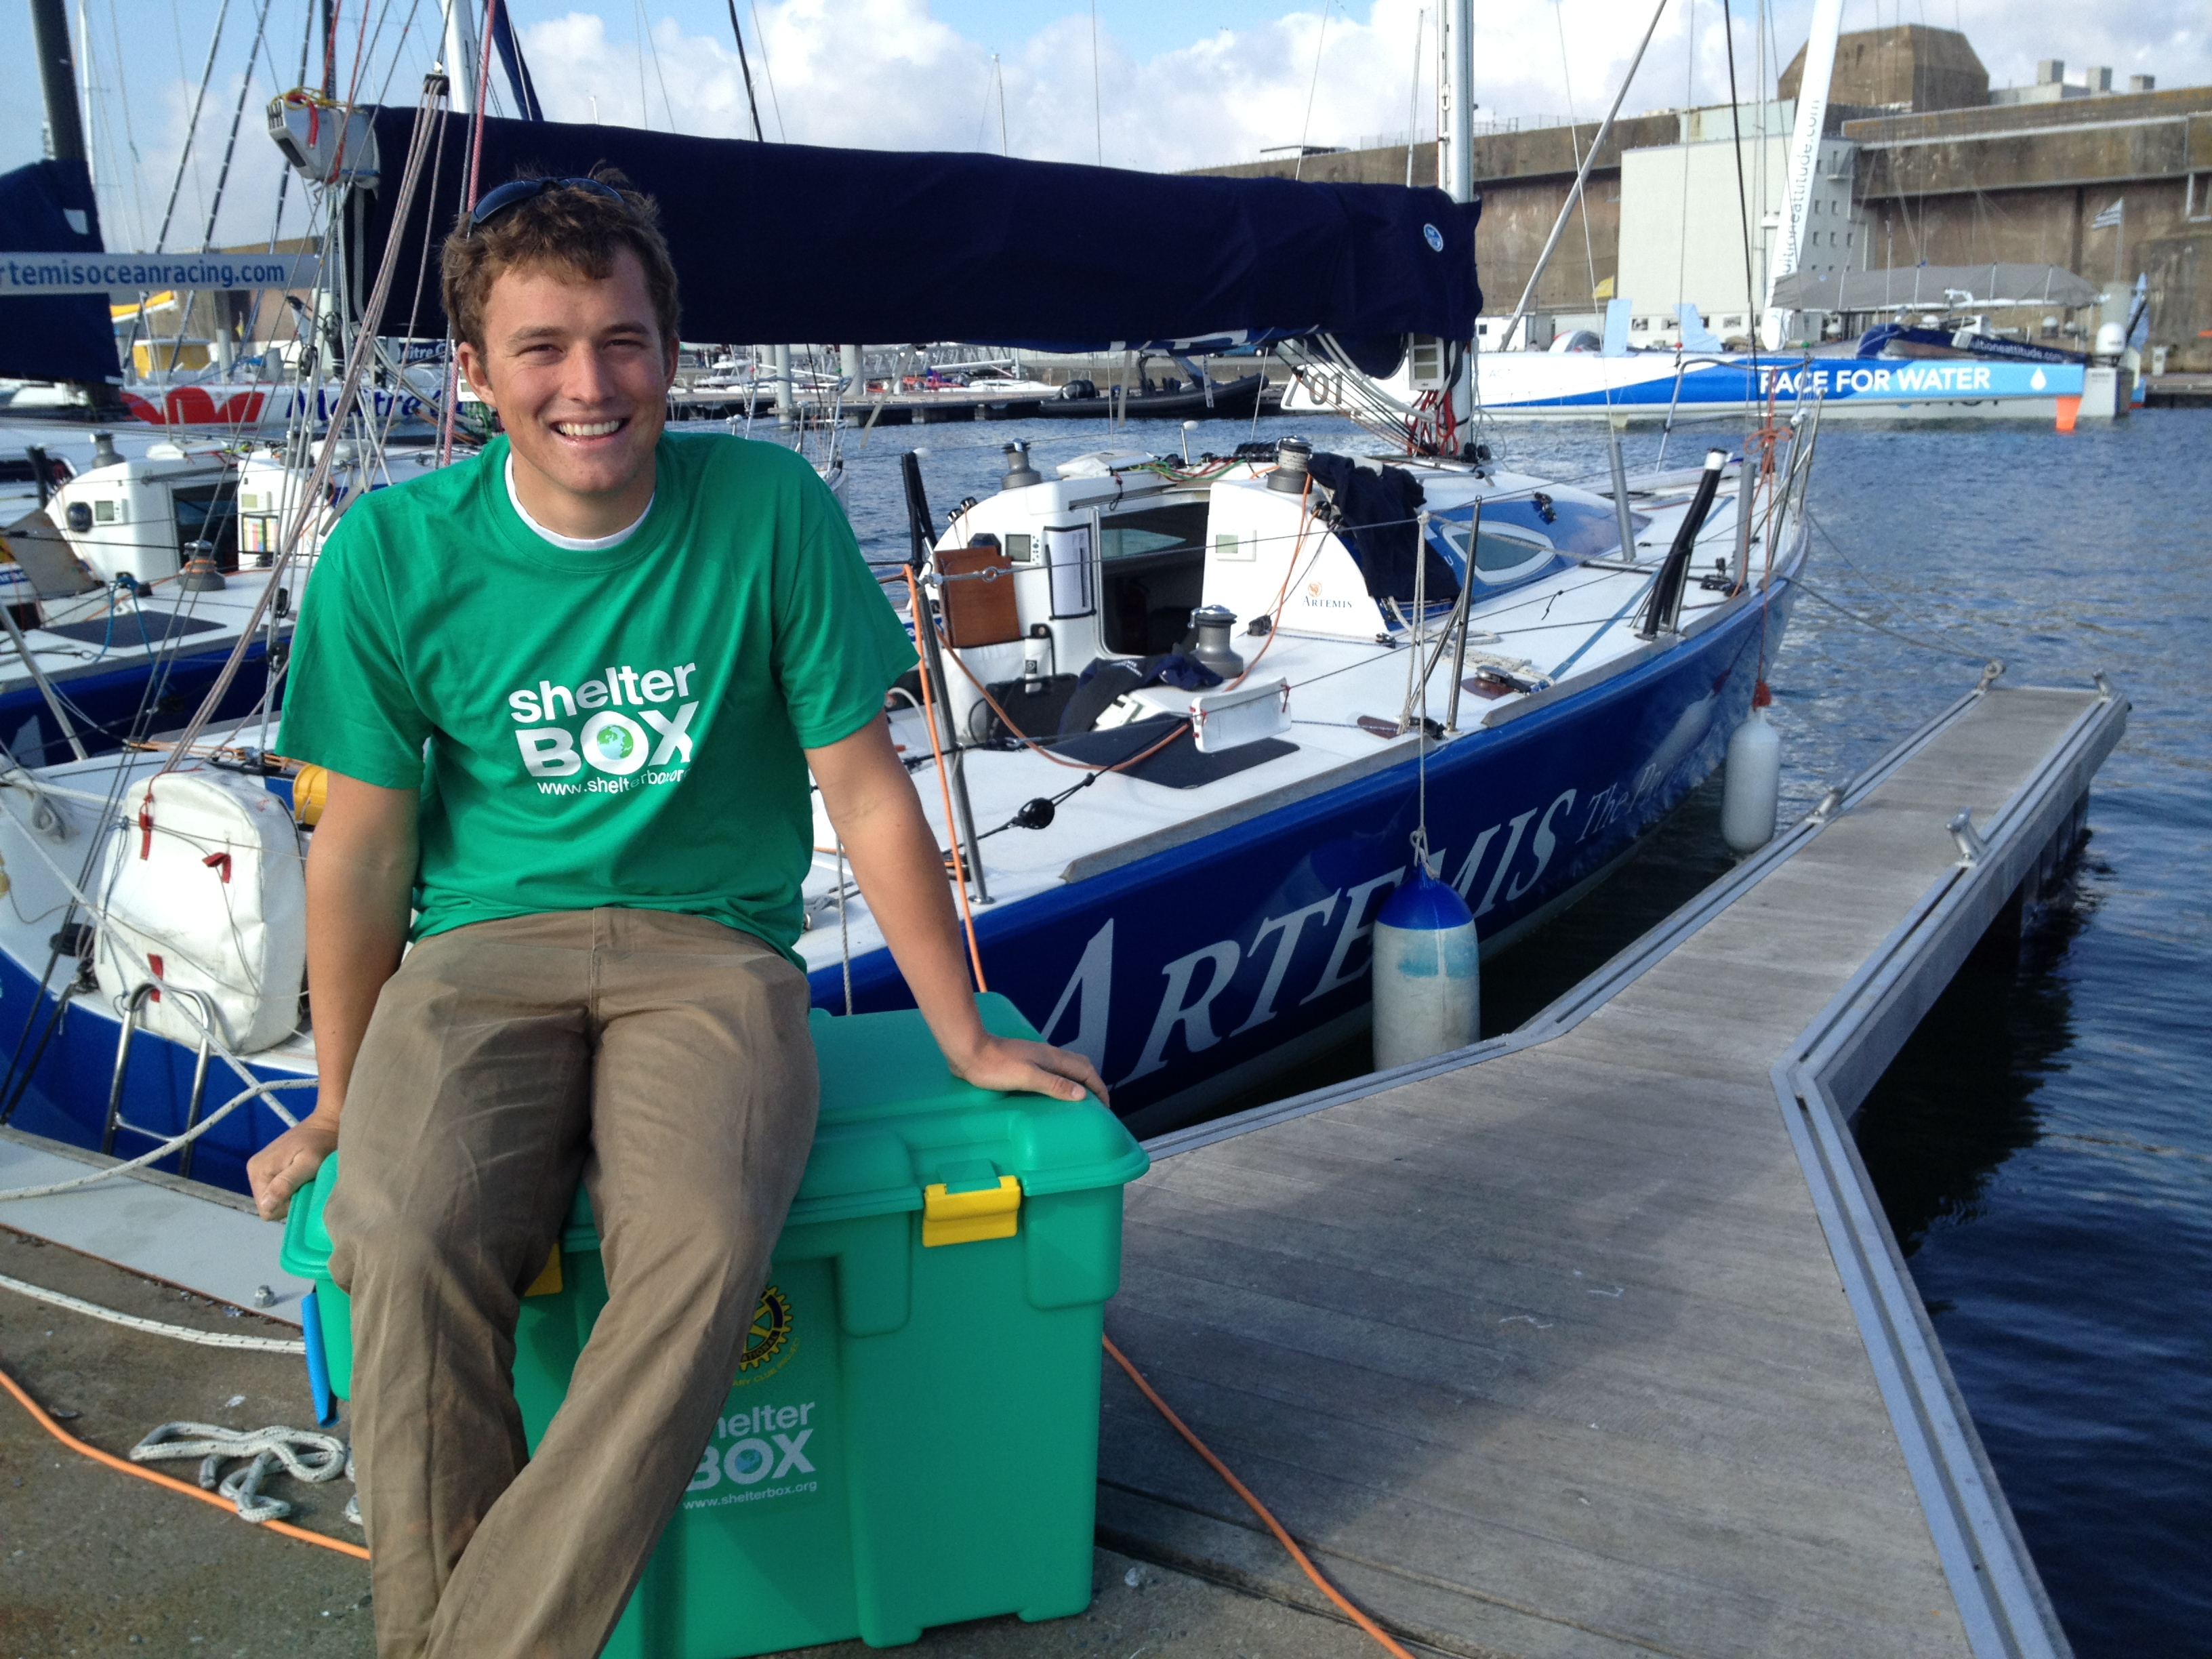 ShelterBox - Do Your Own Thing - solo sailing for ShelterBox